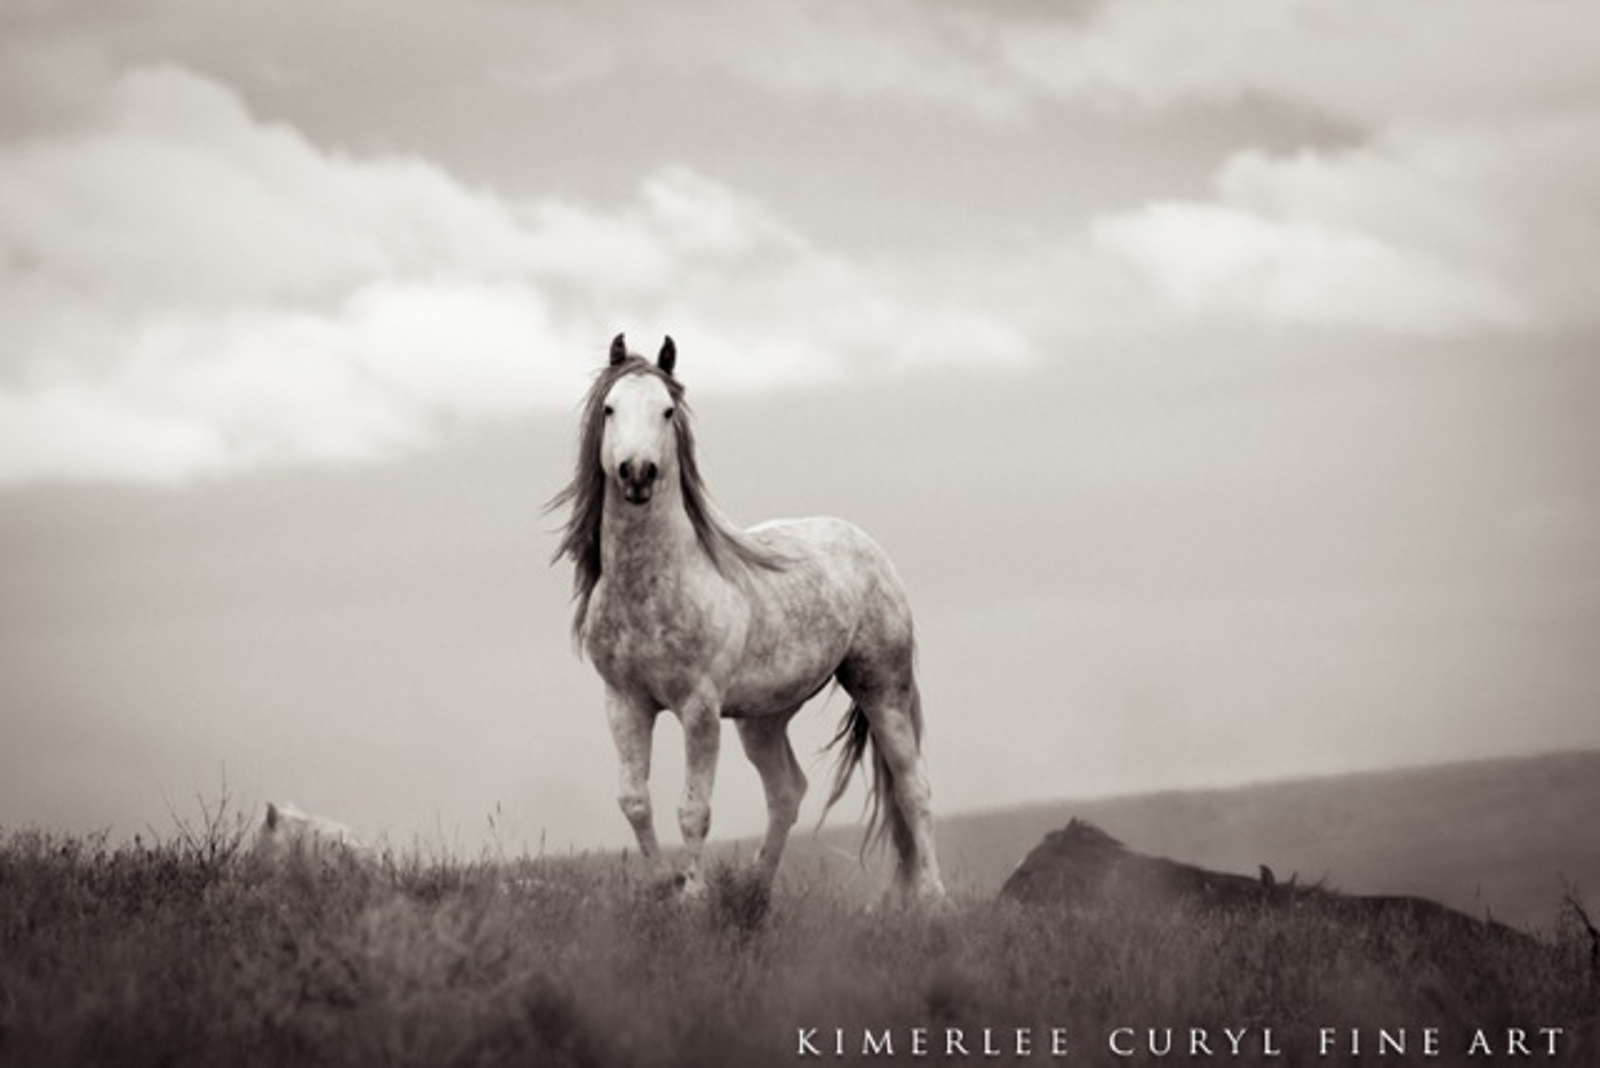 Urgent Action Needed to Stop U.S. Government From Sterilizing Wild Horses in Idaho